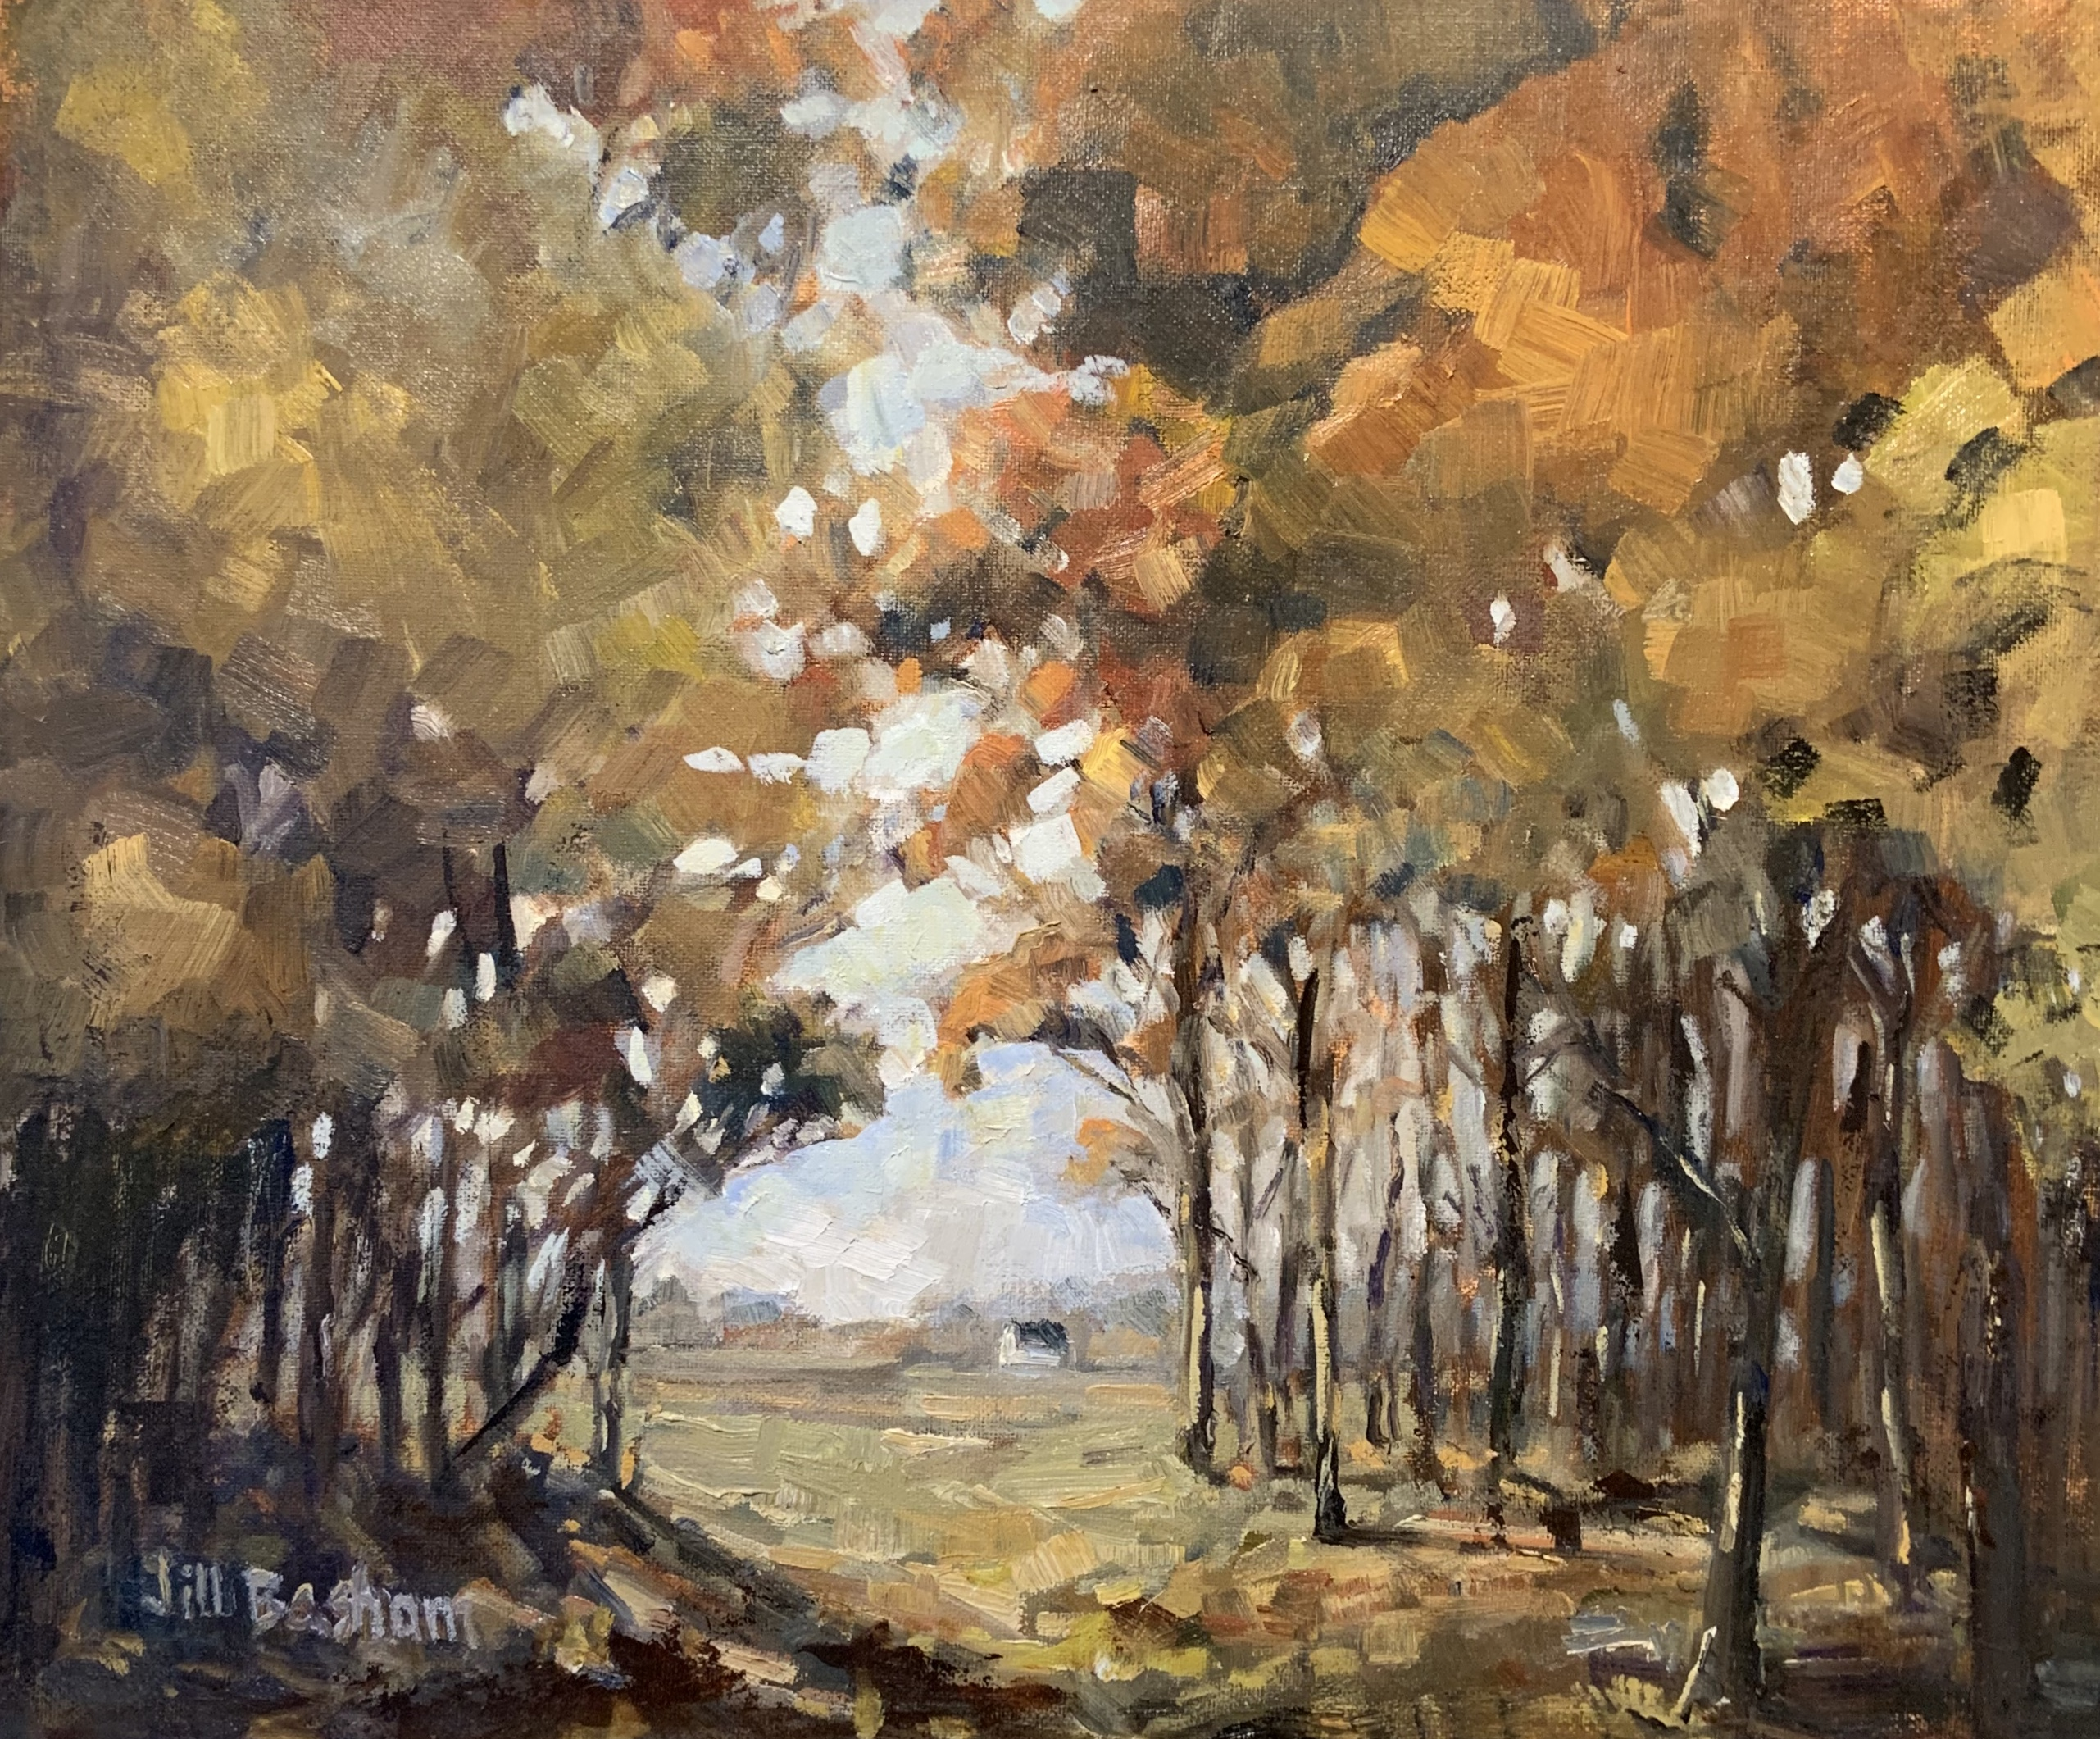 Autumn Quiet-Basham, oil 16x20 $2800